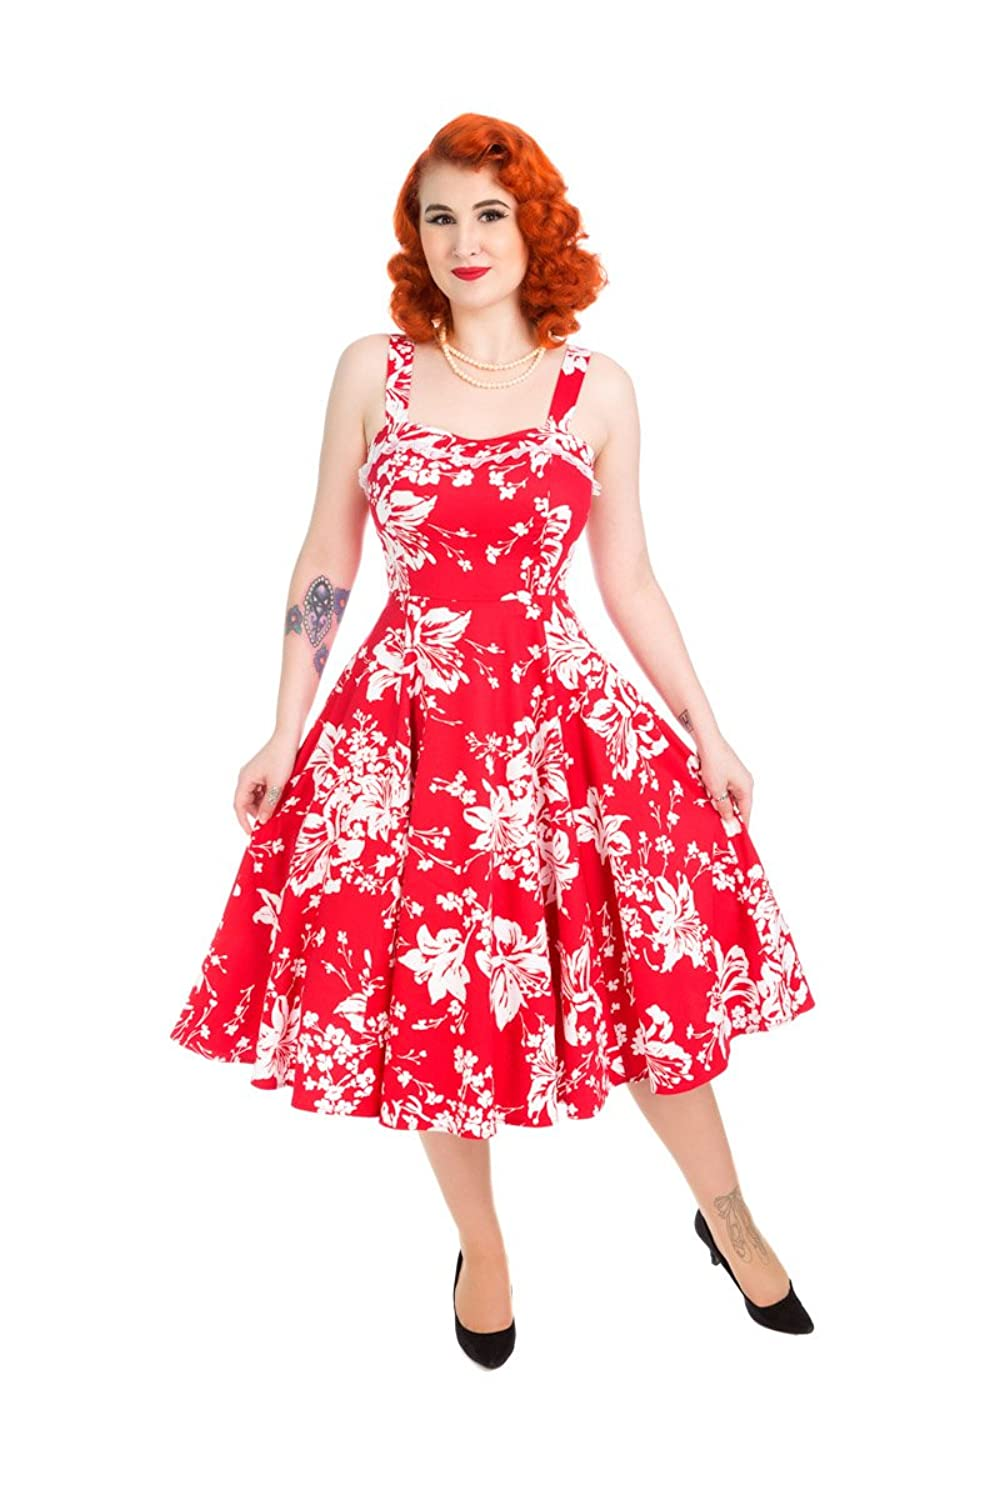 1950s Fashion Dresses:  Floral, Tropical, Tiki, Hawaiian Hearts And Roses Womens White Red Regal Lily Floral Swing Dress Rockabilly £23.95 AT vintagedancer.com